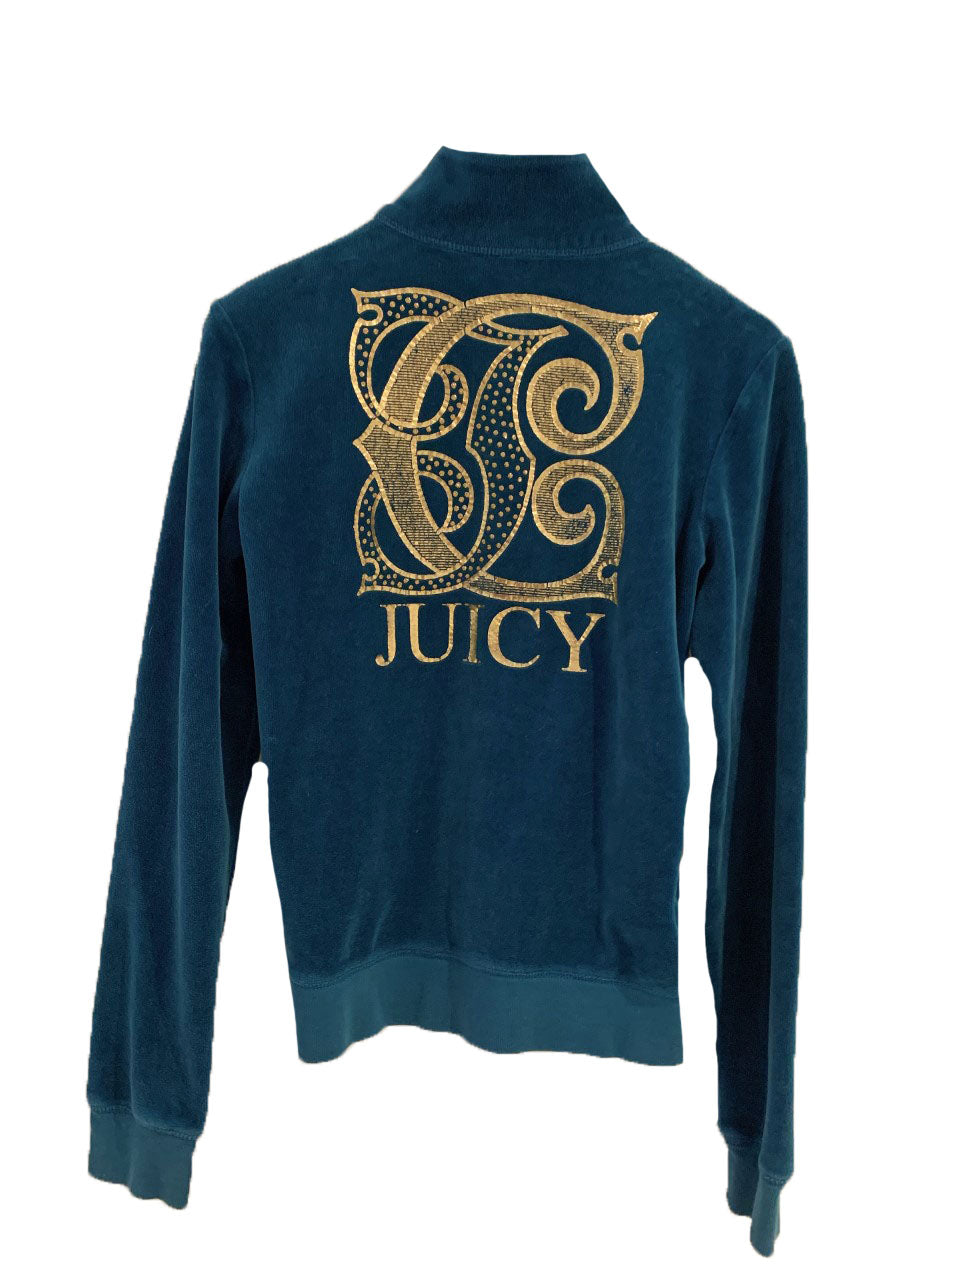 Juicy Couture girl